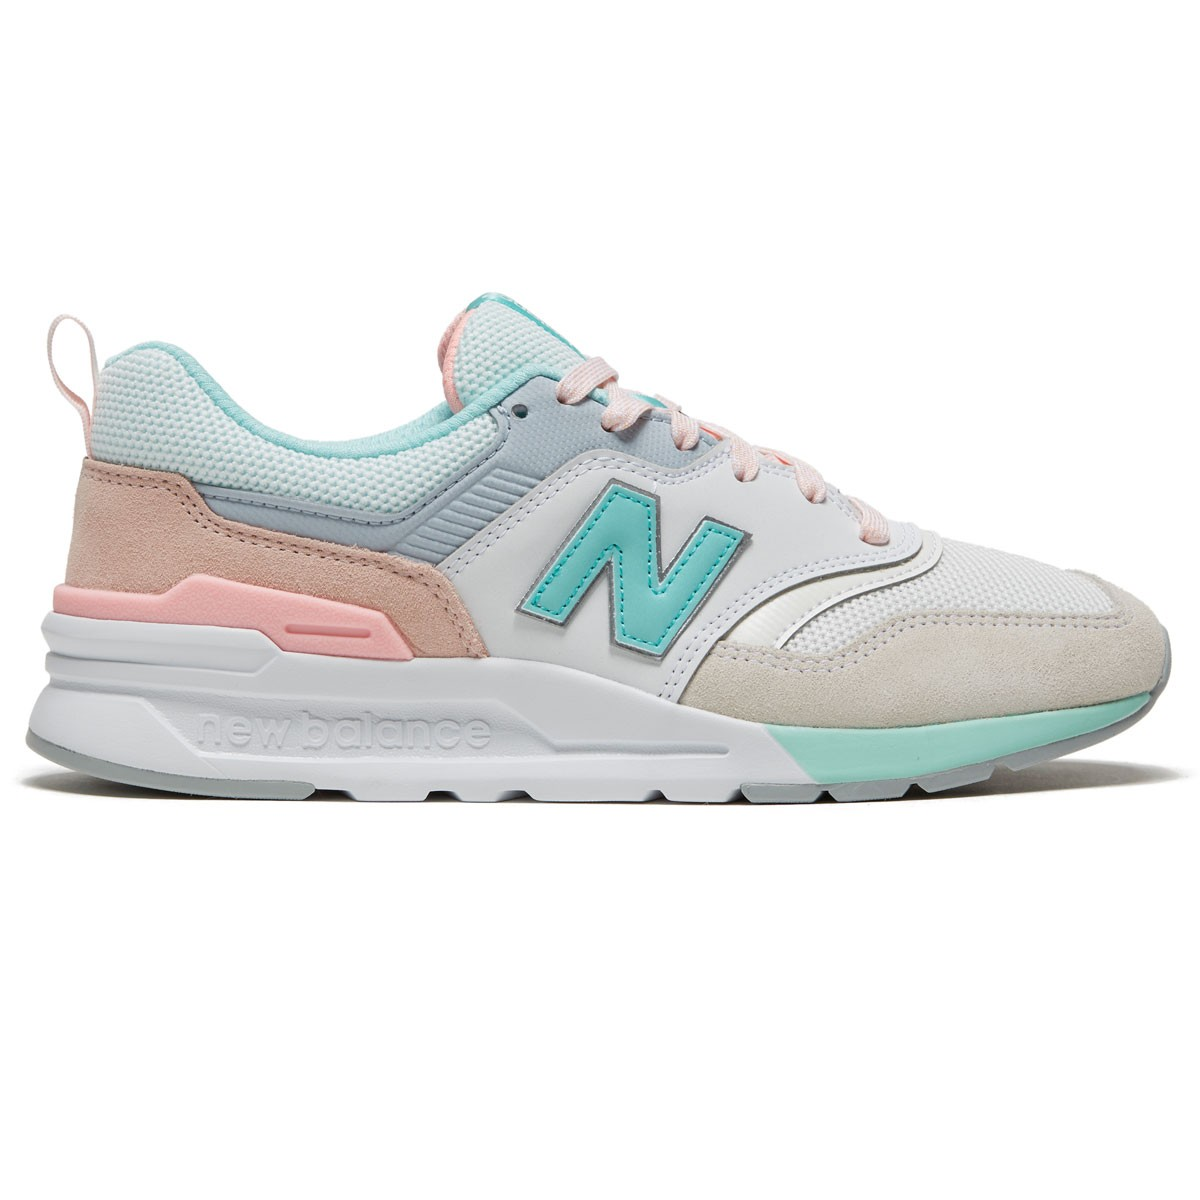 New Balance Womens 997H Shoes